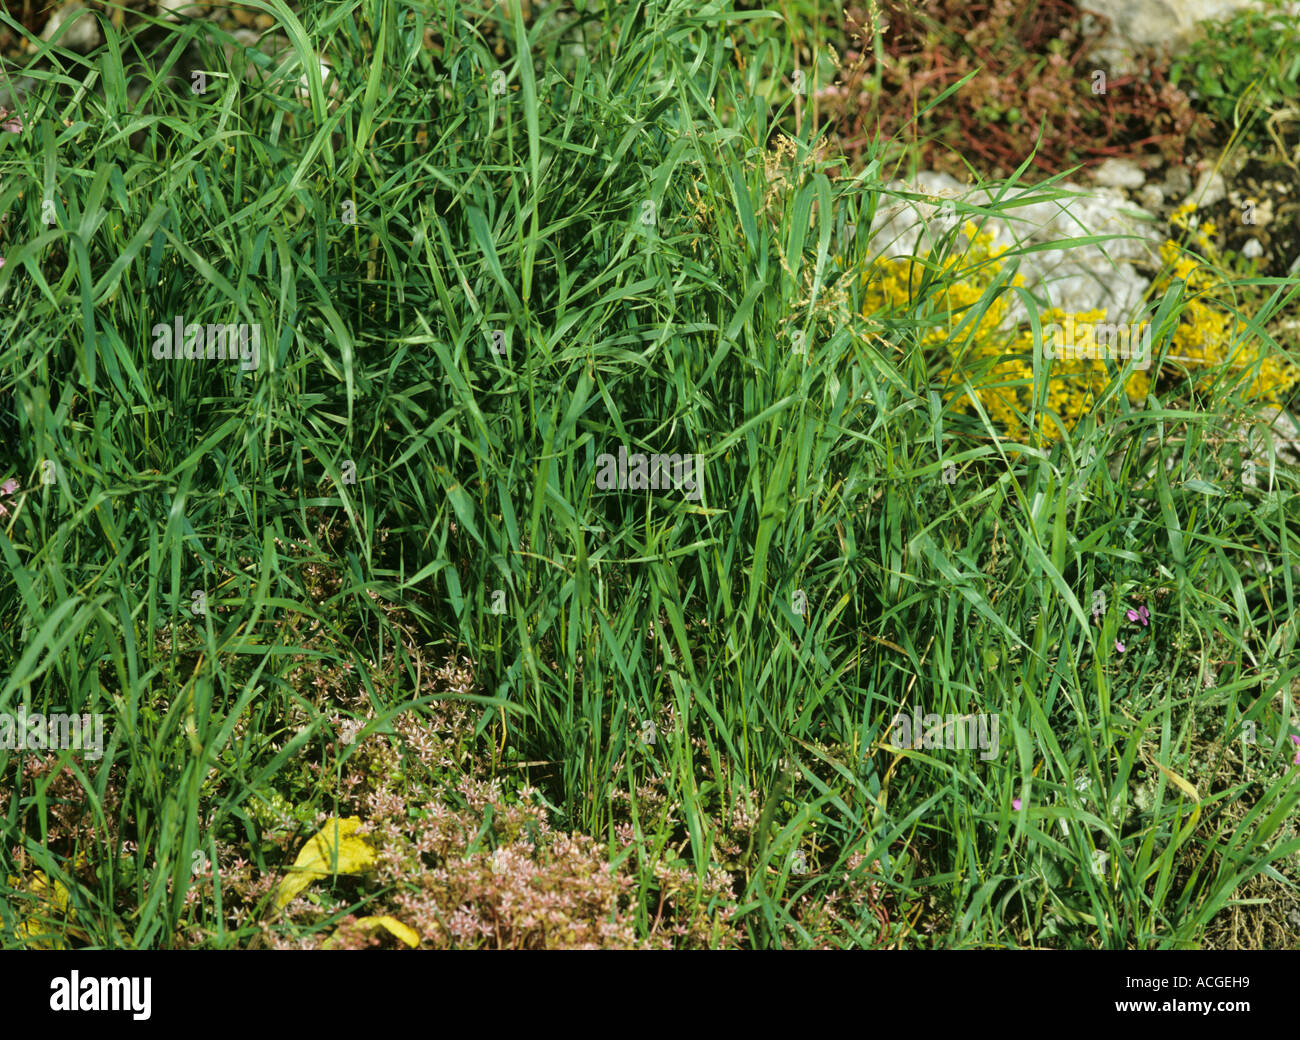 Grass Couch Couch Agropyron Repens A Serious Grass Weed In A Garden Rockery